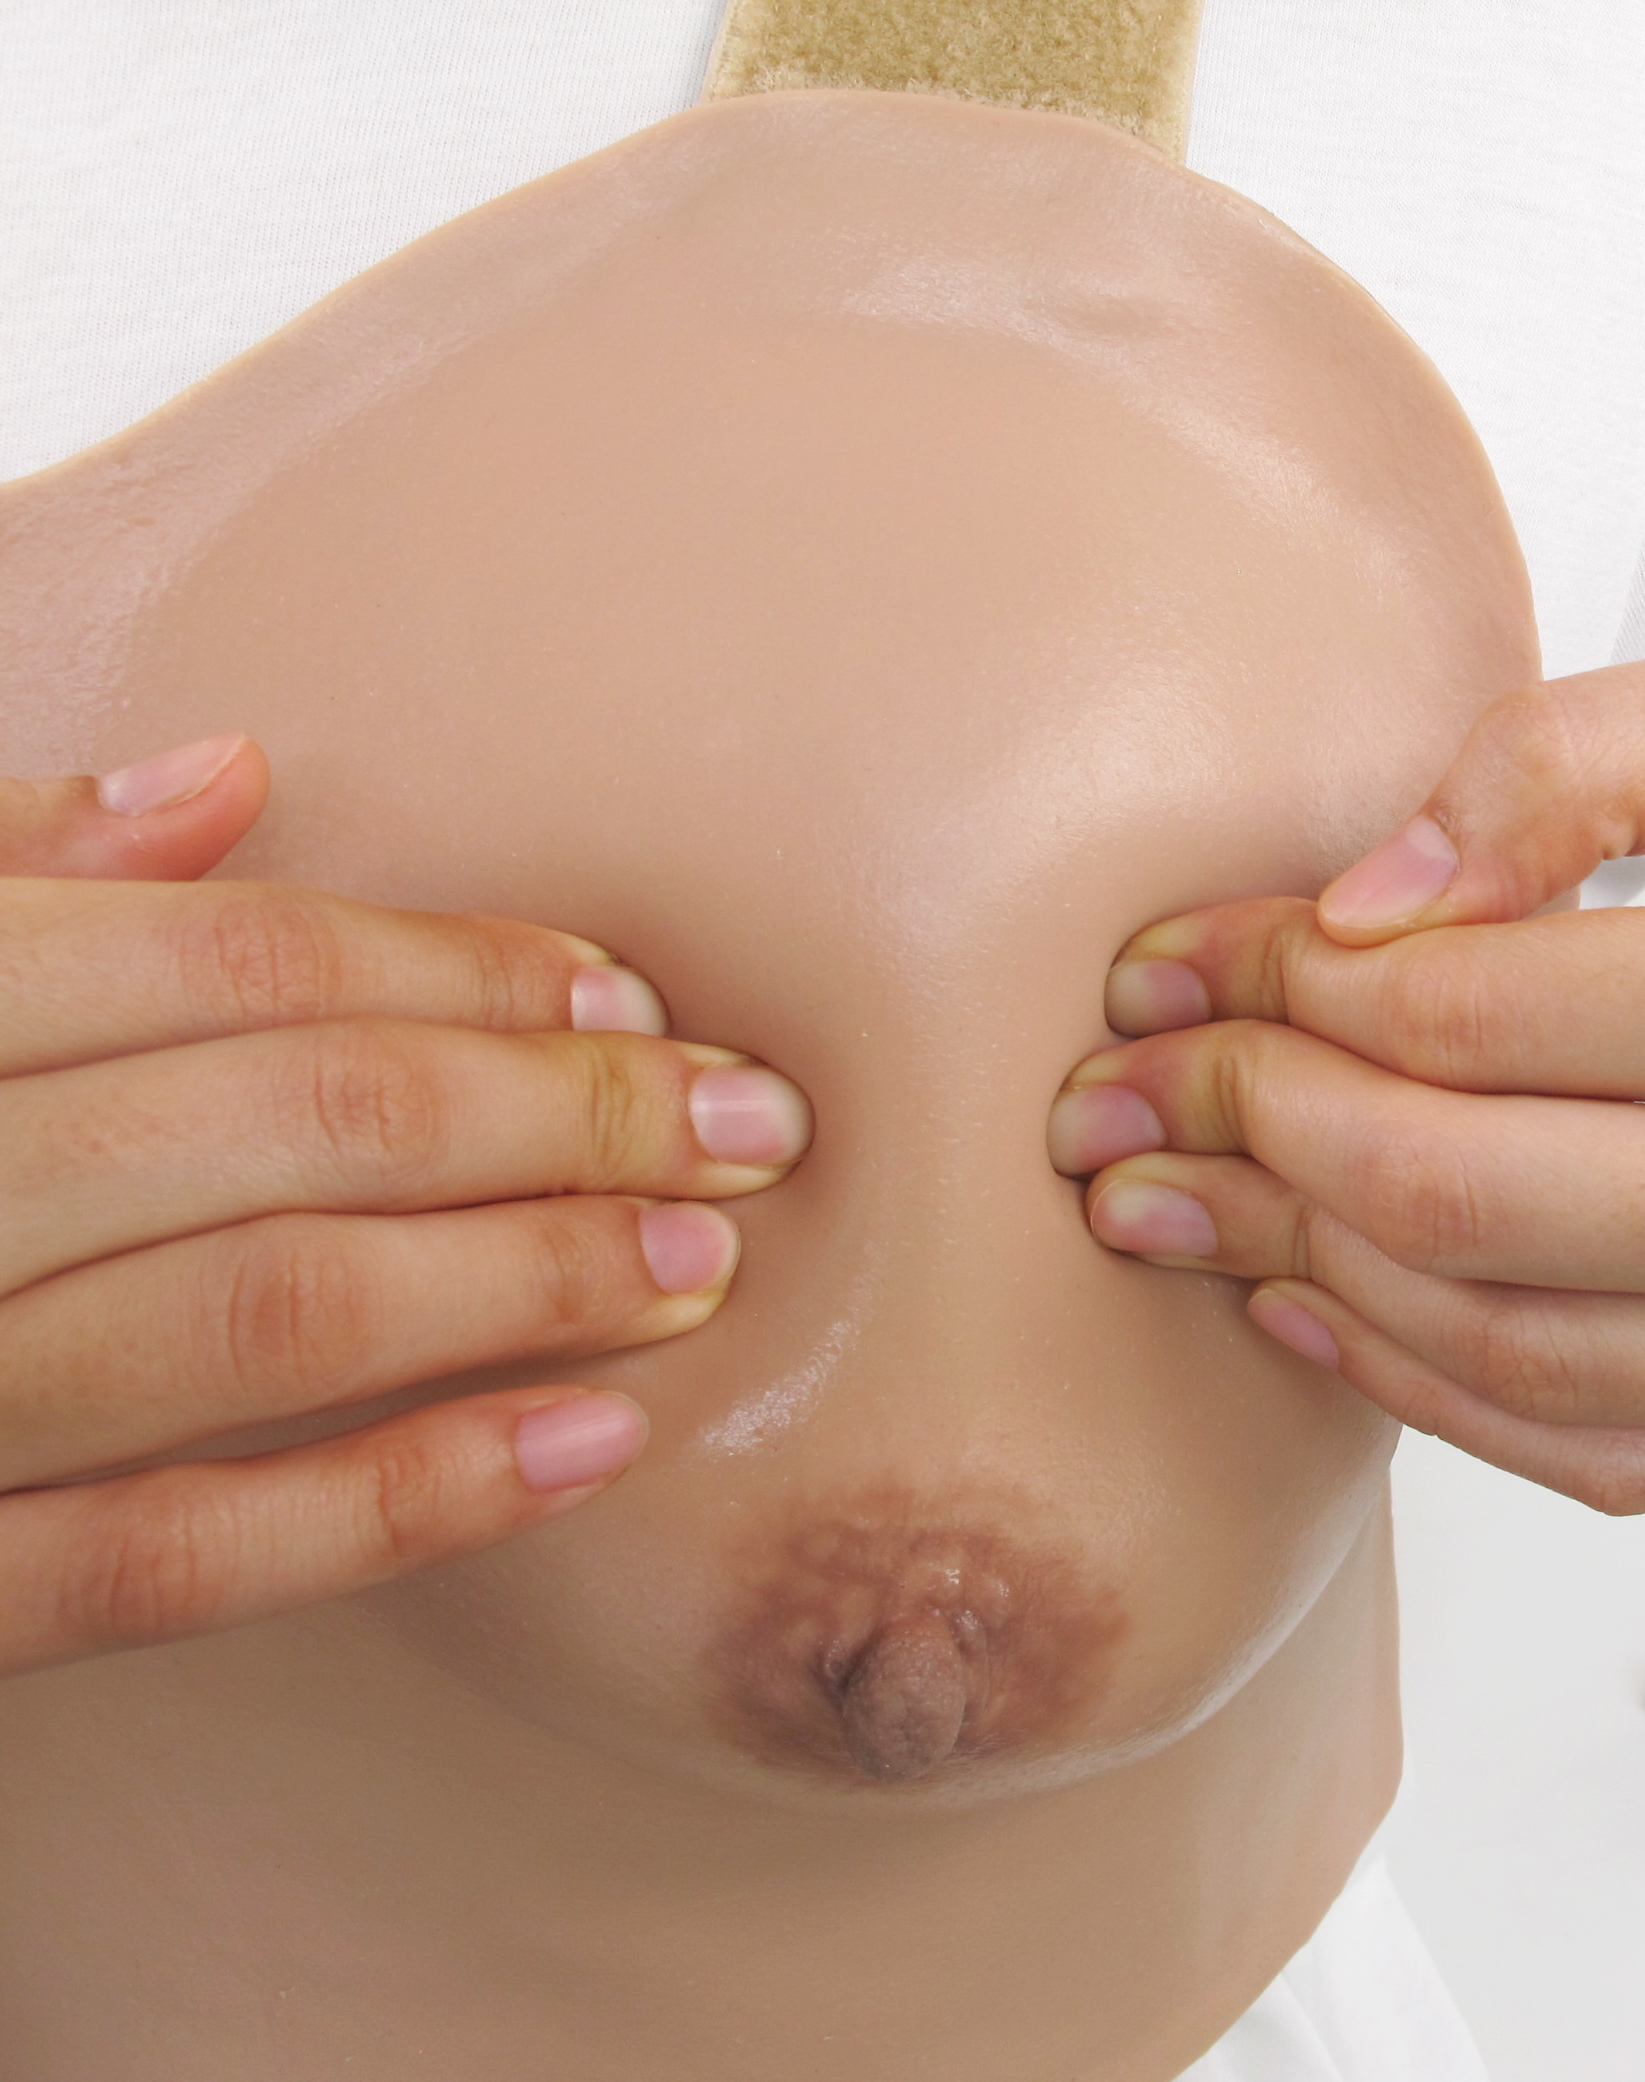 Breast Anatomy Lactation Model04